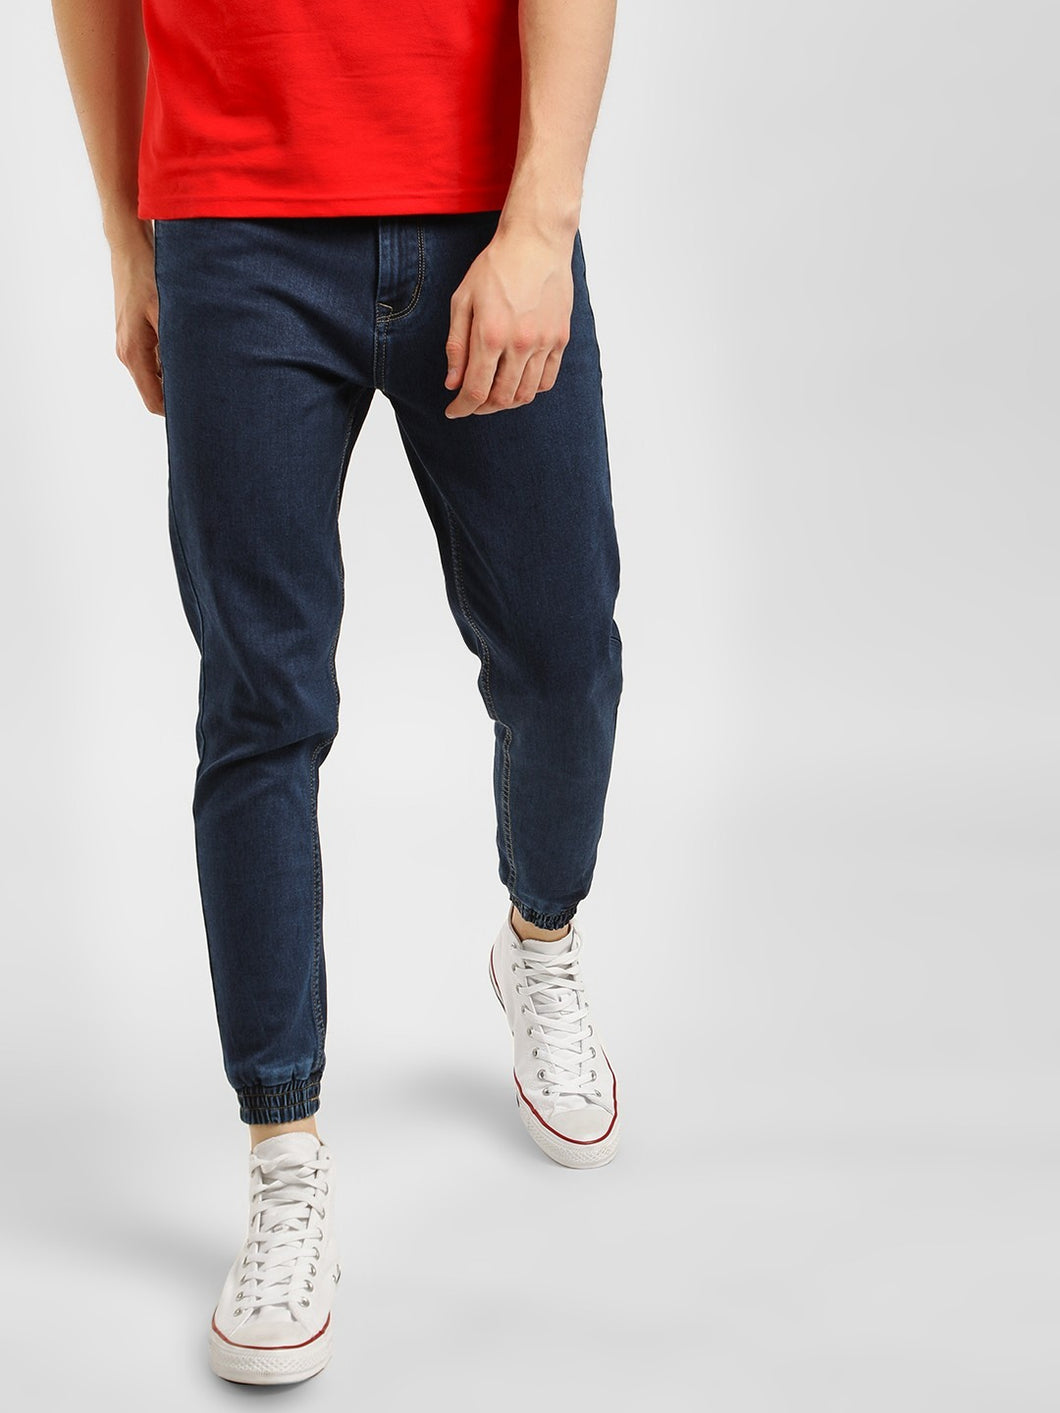 Men's Contemporary Dark Denim Joggers: Rs.999 | Book For Rs.31 Only